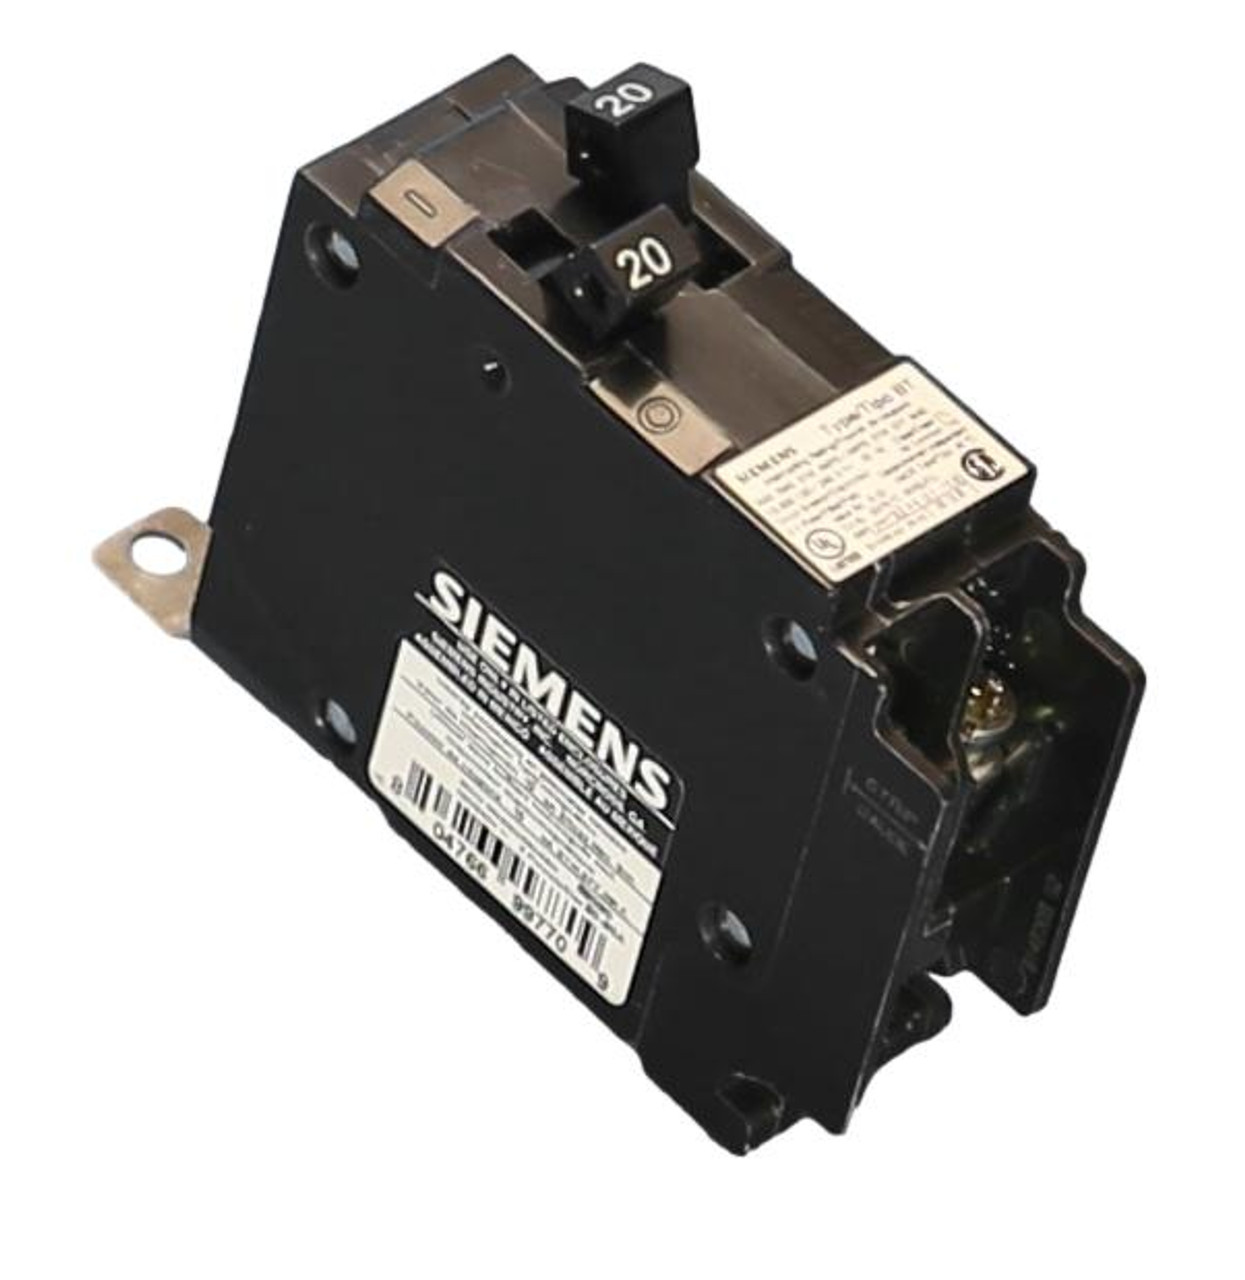 B2020 Duplex 20A-20A Bolt-on circuit Breaker New Product from Siemens